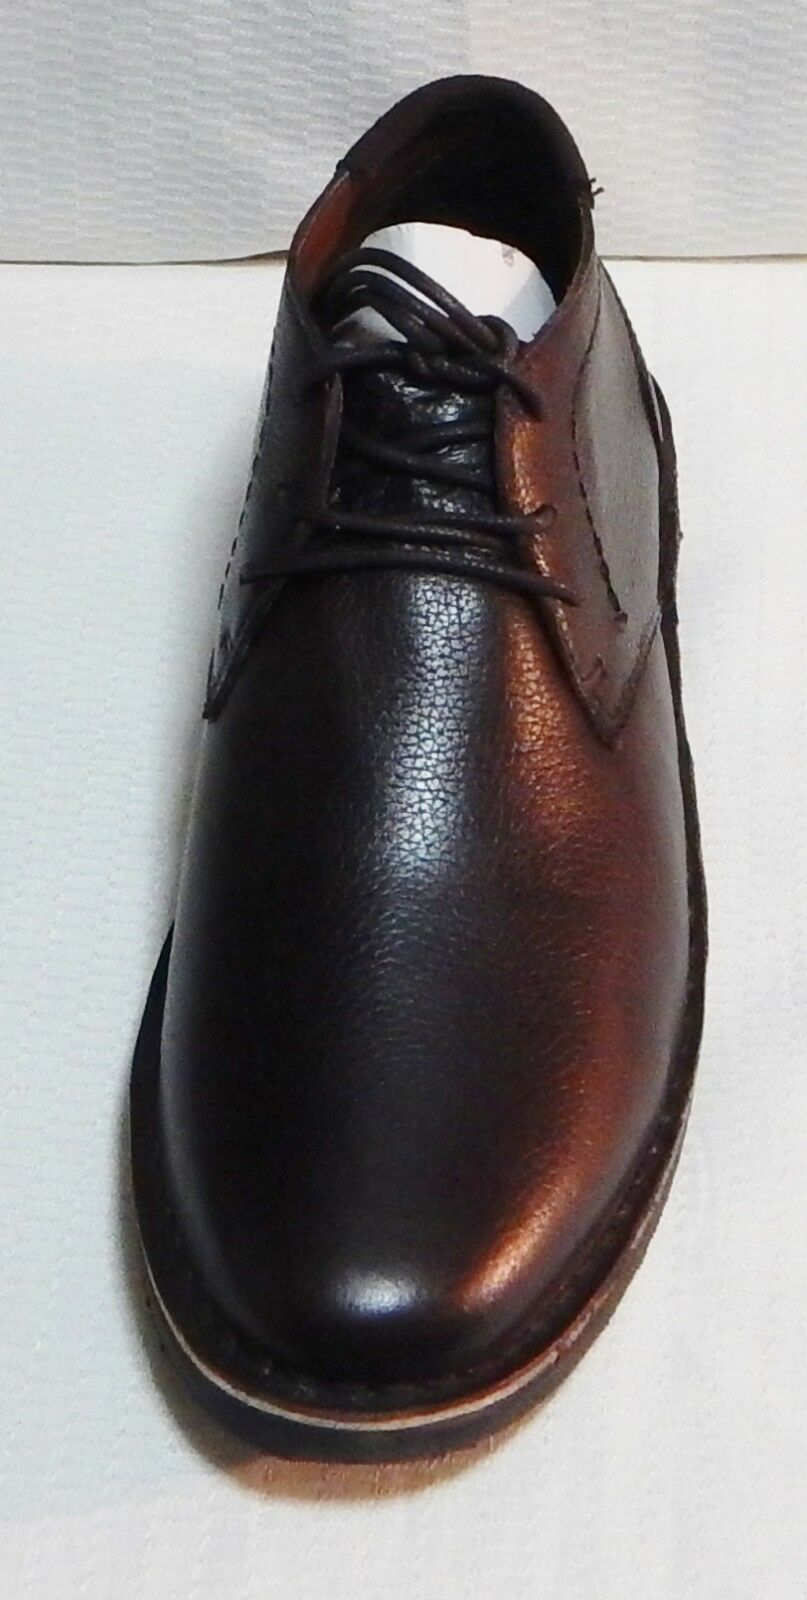 KENNETH COLE DESERT SUN LEATHER CHUKKA BOOT(DARK #3445 BROWN EXTRA LACES)SZ 11.m #3445 BOOT(DARK 0a0440